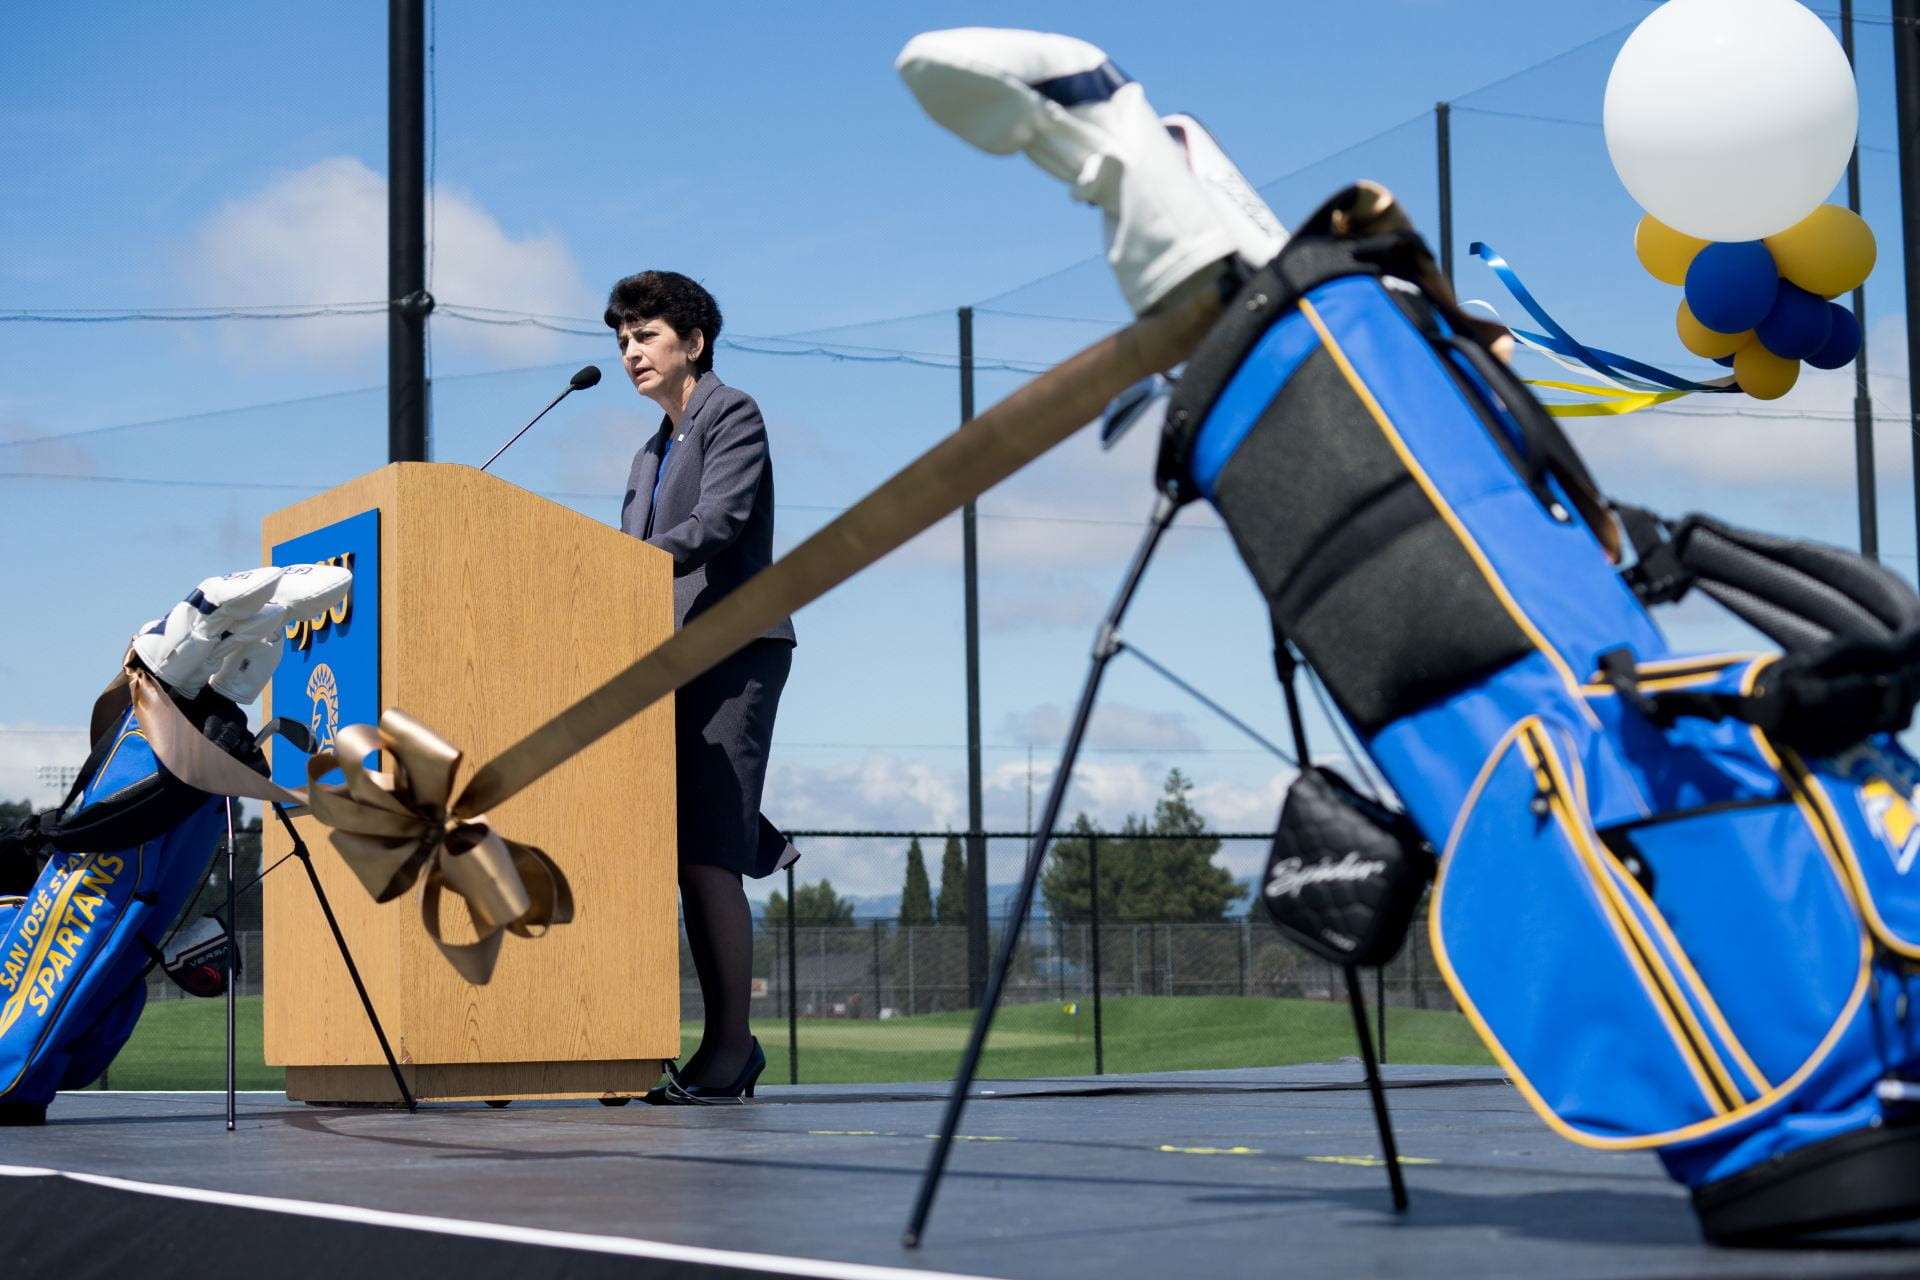 SJSU President Mary Papazian addresses attendees of the Spartan Golf Complex ribbon cutting June 1, 2017, at South Campus. (James Tensuan/SJSU)